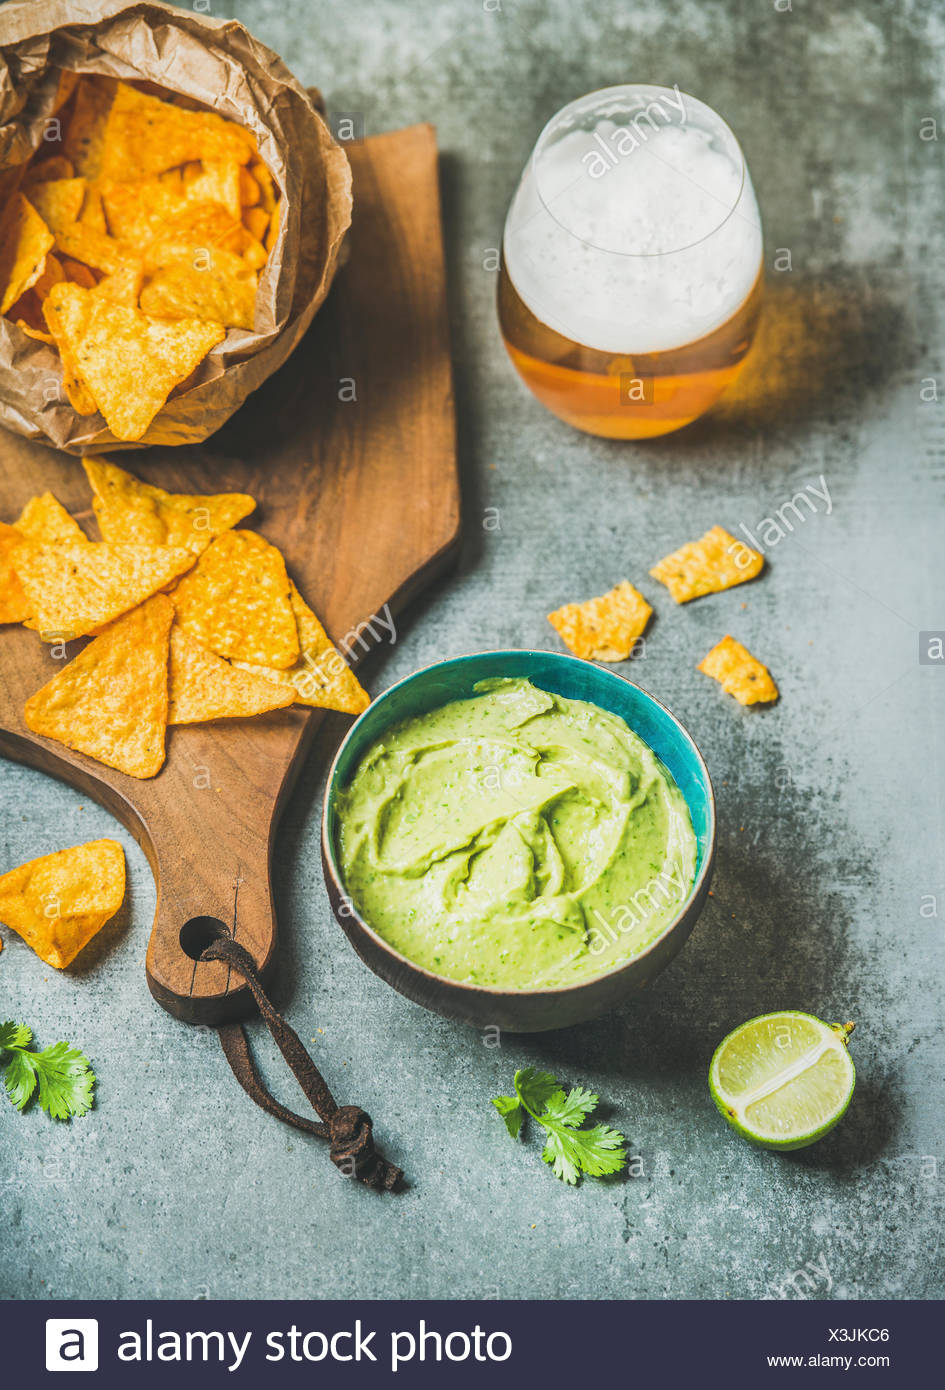 Mexican corn chips, fresh guacamole sauce and glass of beer on wooden serving board over grey concrete table background, selective focus, vertical com - Stock Image